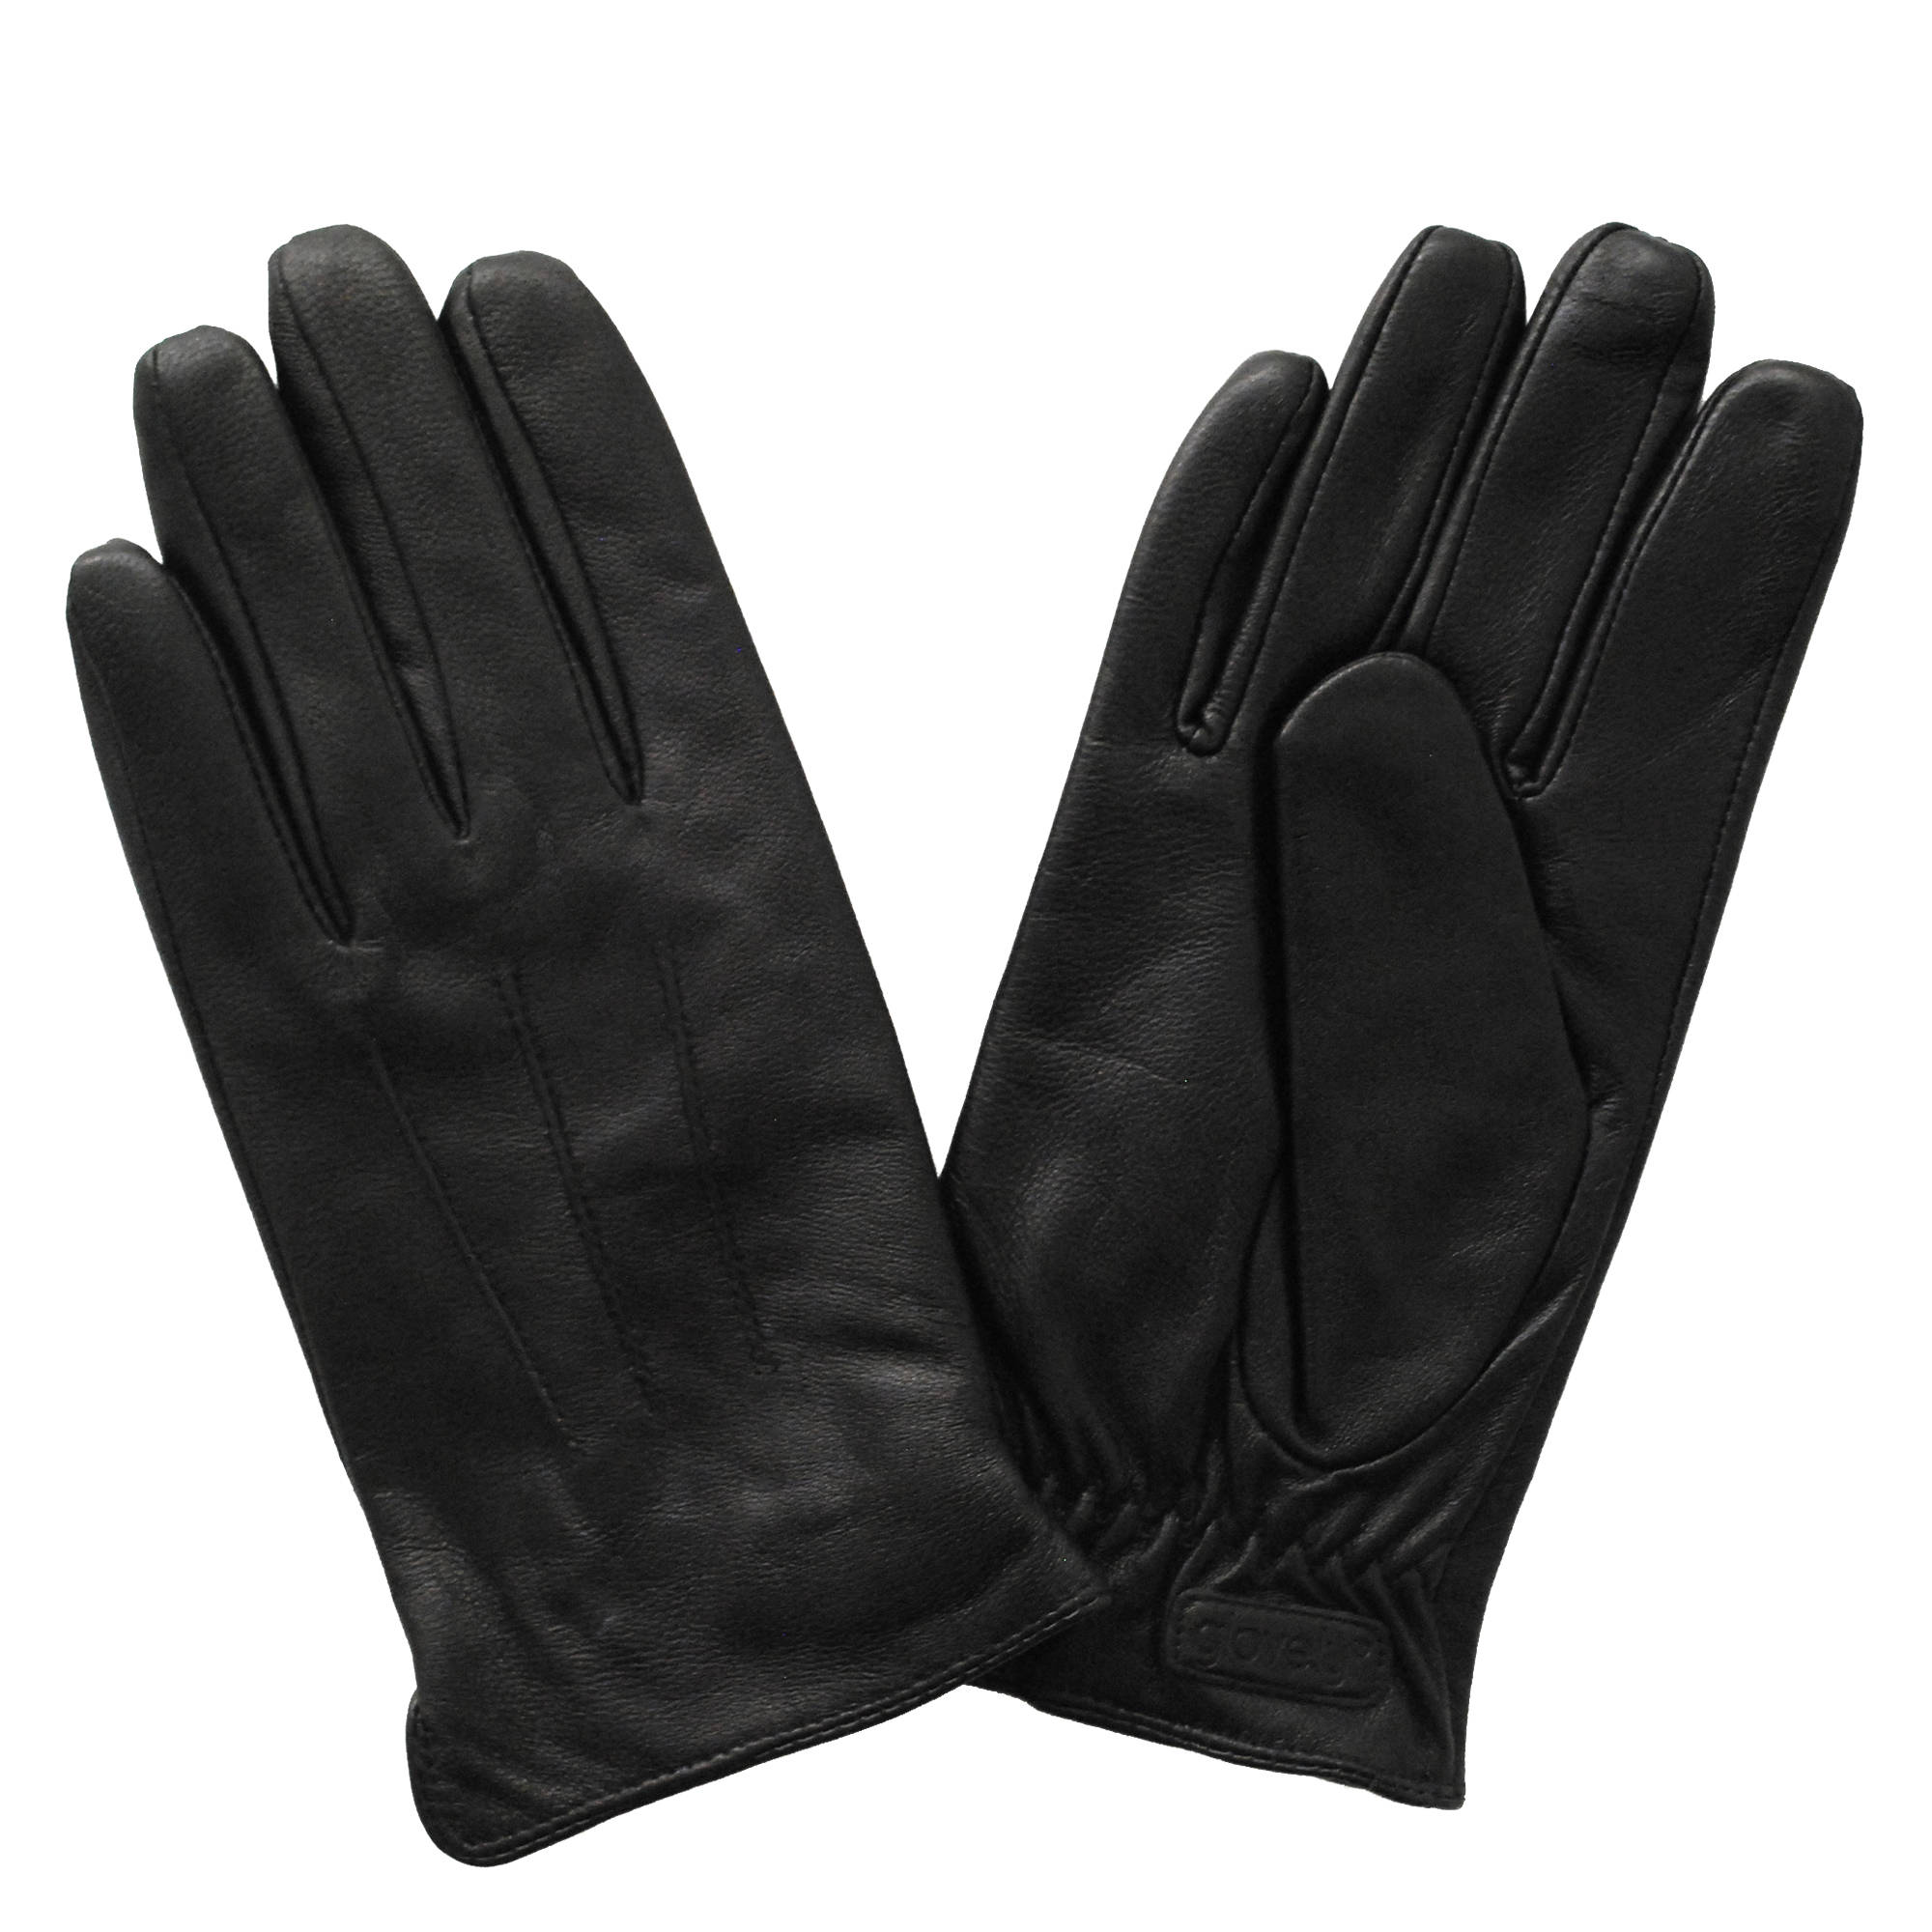 Glove.ly Men's Leather Touchscreen Gloves (Black, Small)